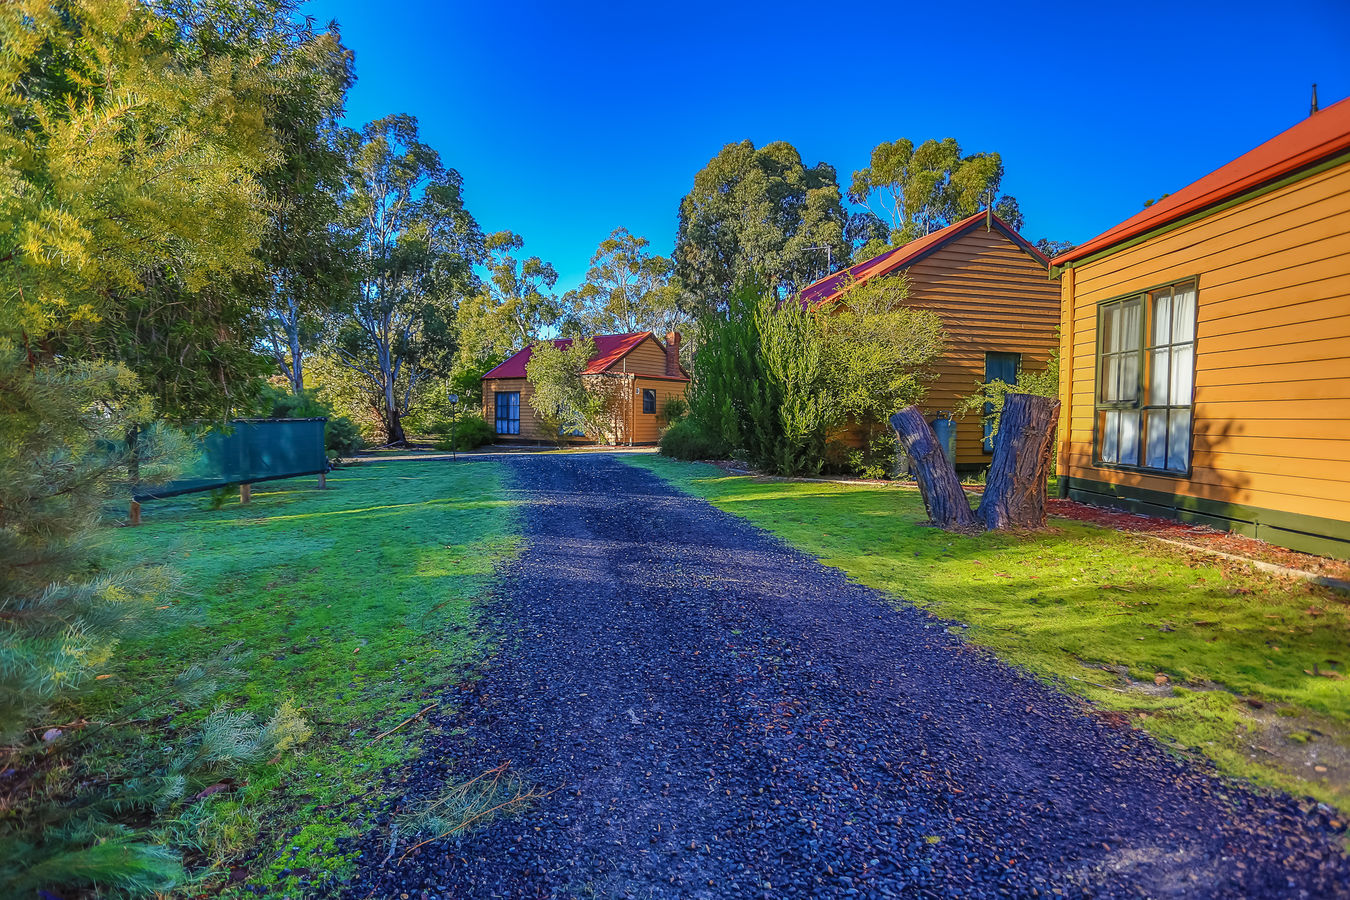 2 Bedroom Lodge   Self Contained | 2 Bedroom Lodge   Self Contained | 2 Bedroom Lodge | Self Contained | Mountain View Lodges | Halls Gap | Grampians National Park